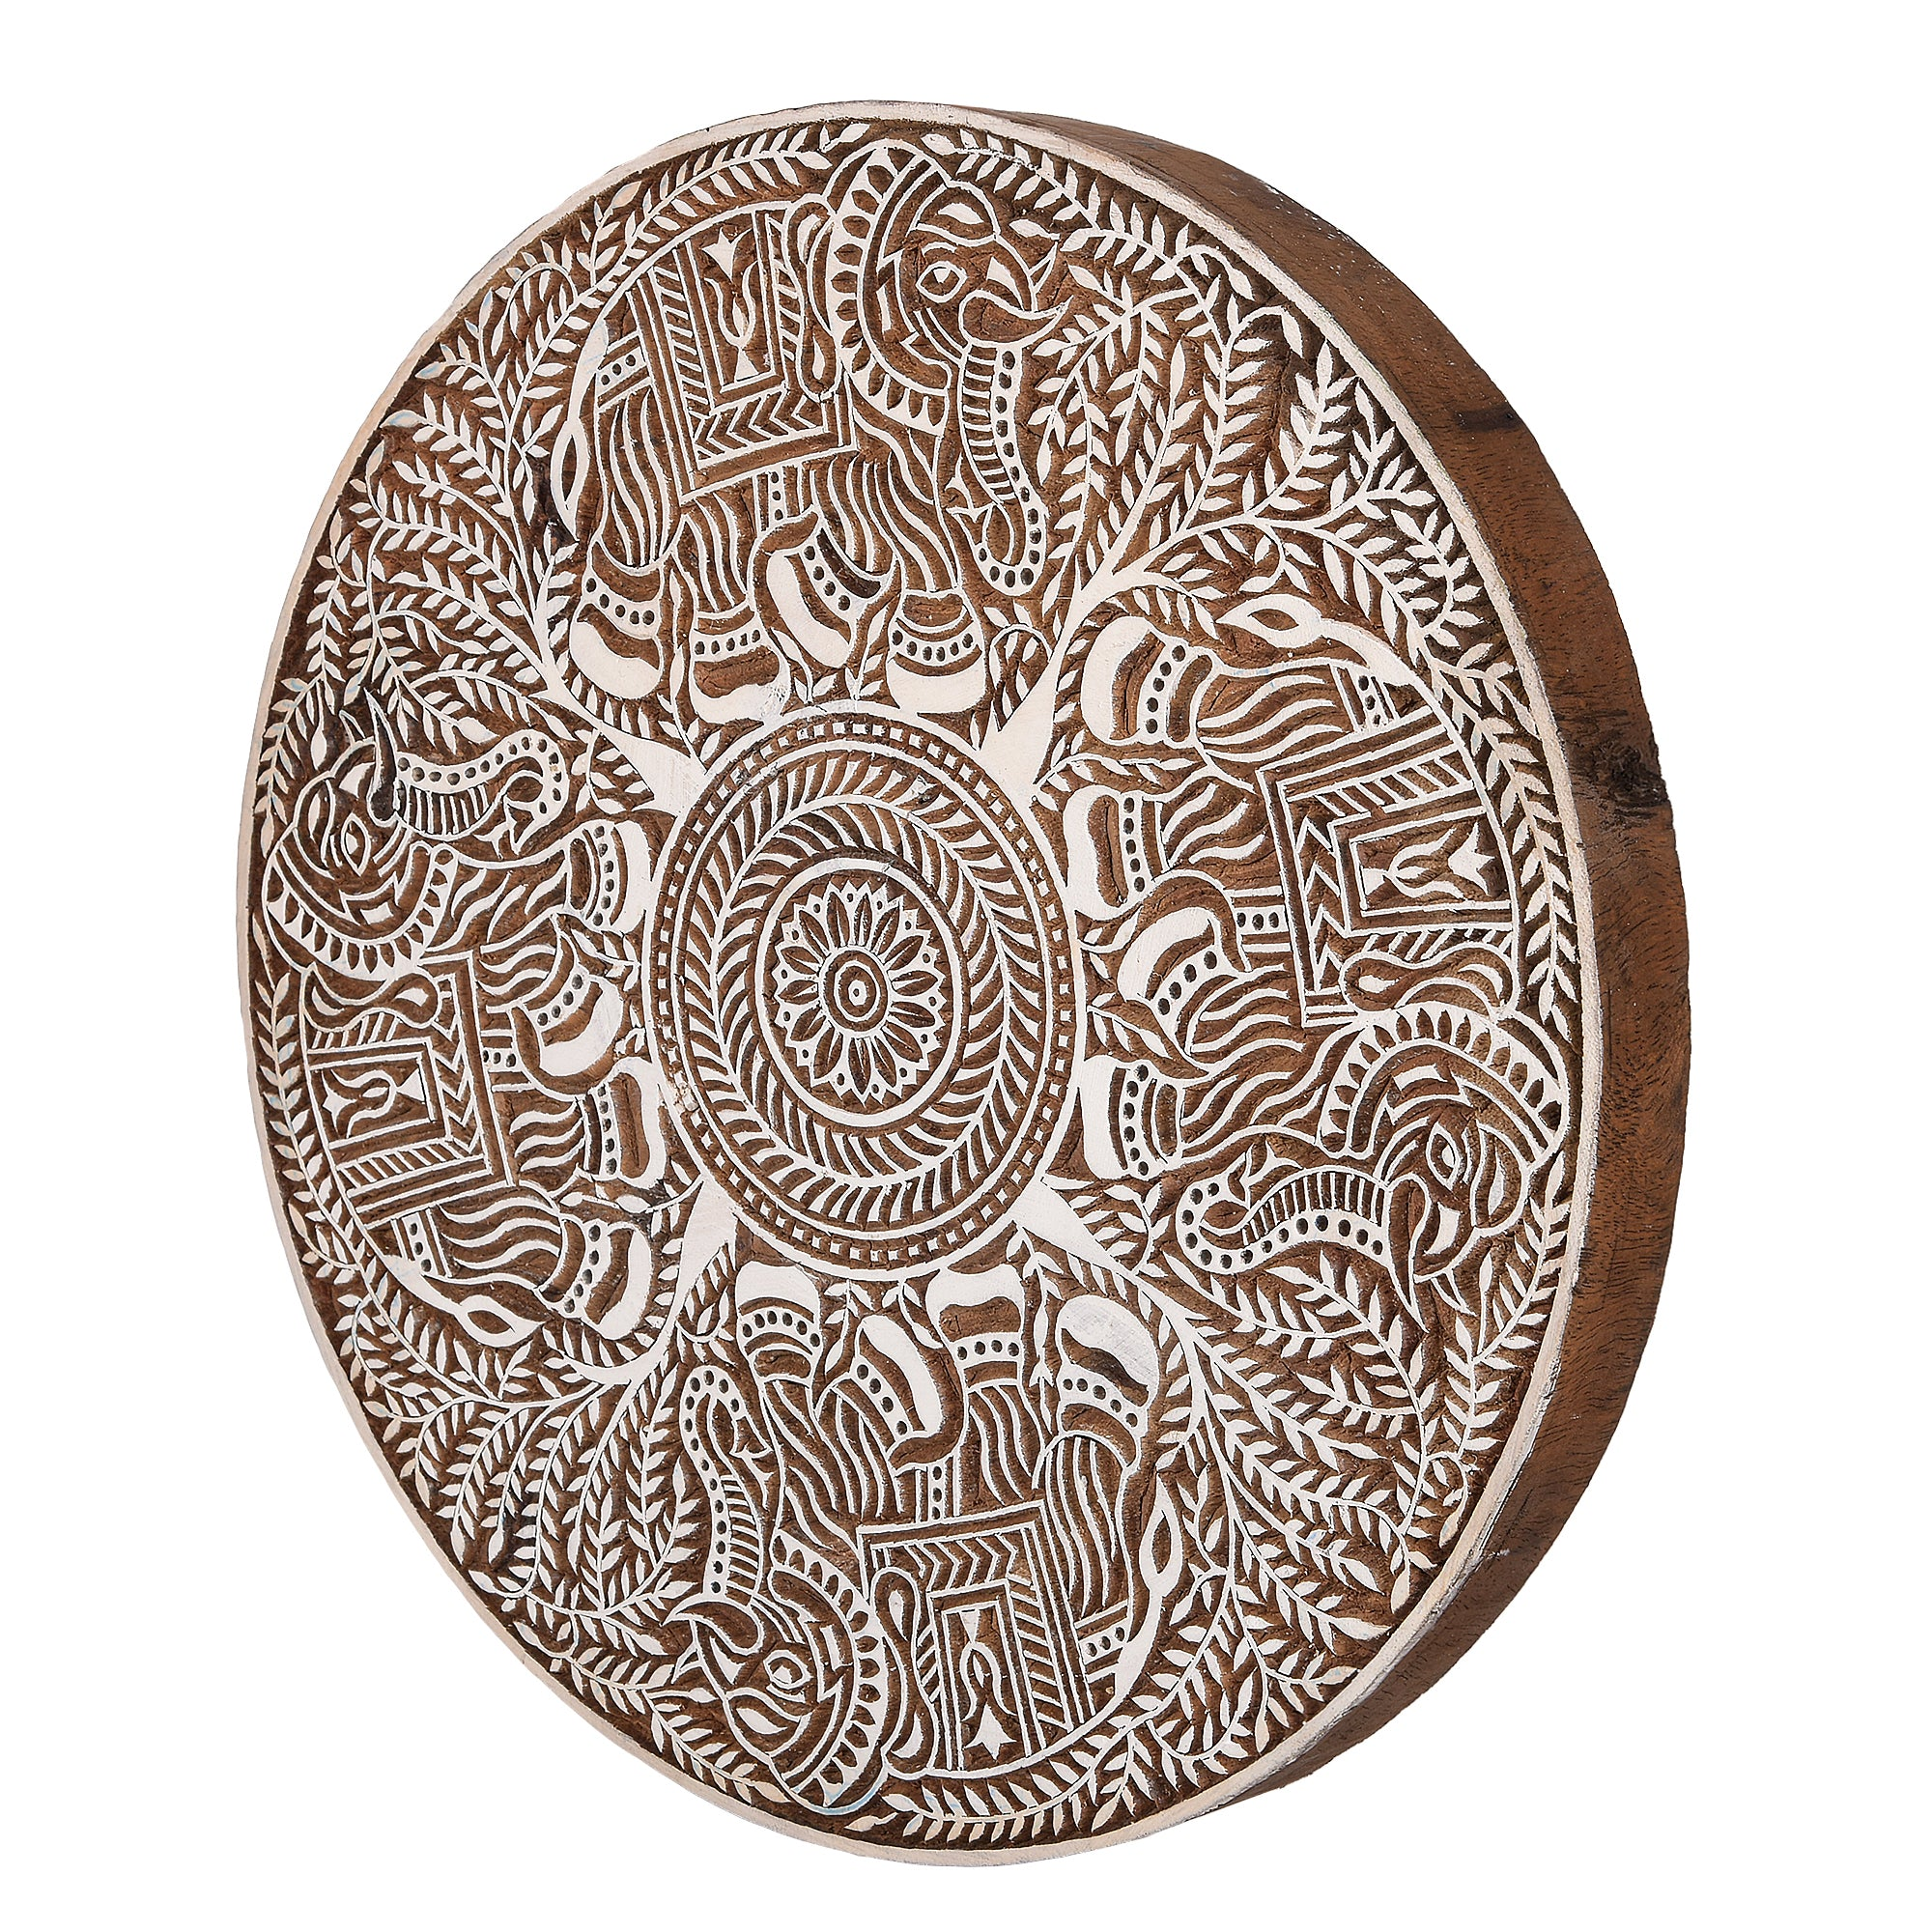 Ethnic Motifs - Handcarved Wood Wall Hanging